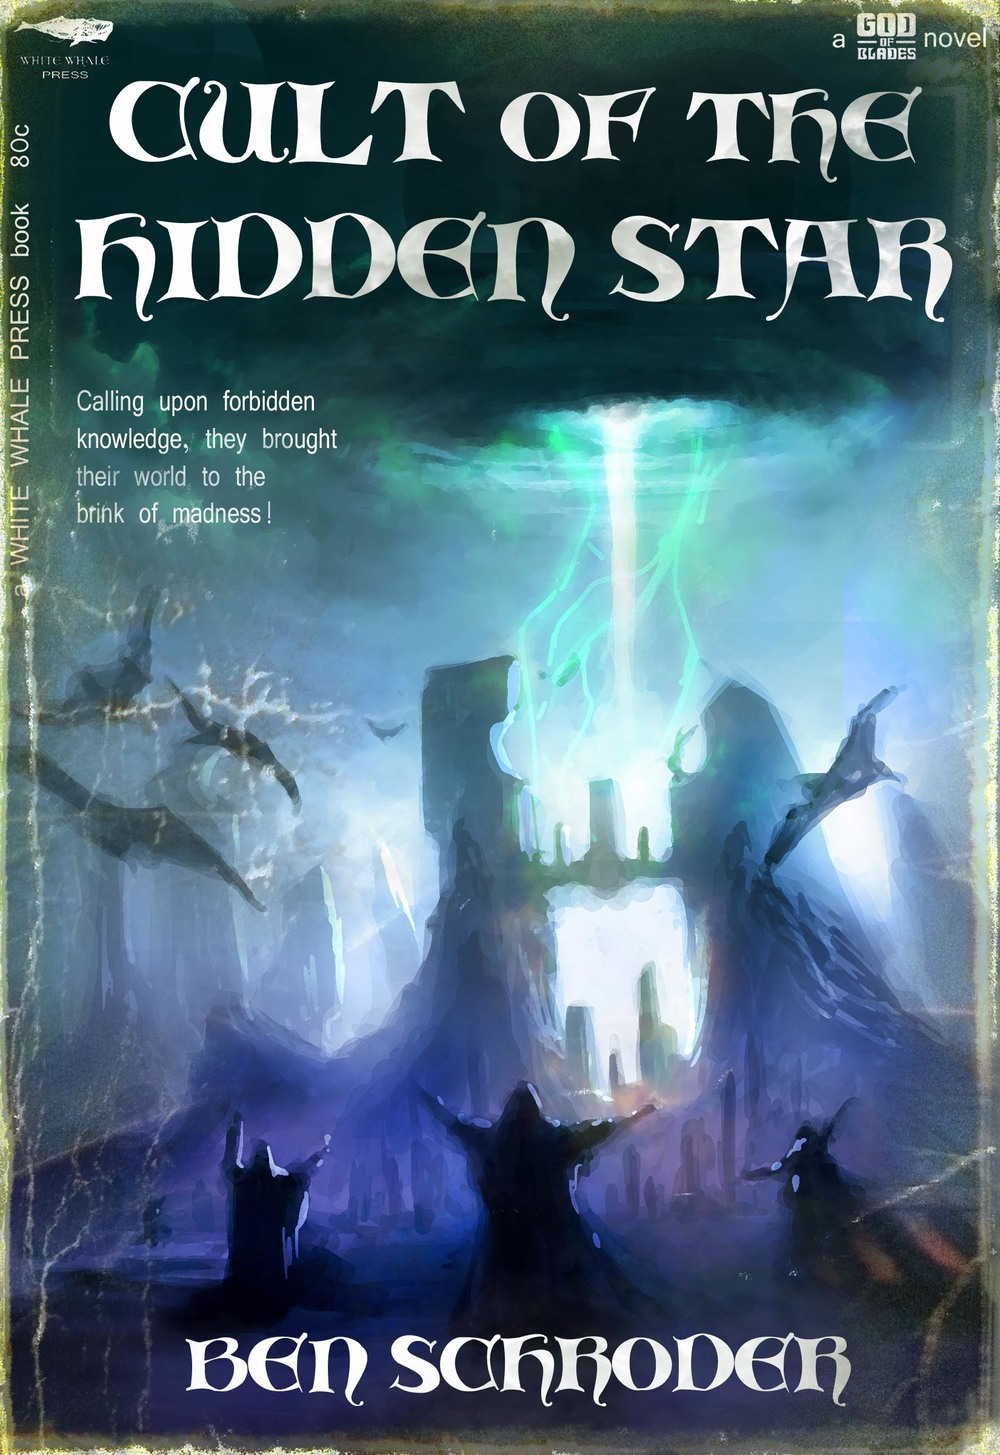 cult_of_the_hidden_star_flat2.jpg